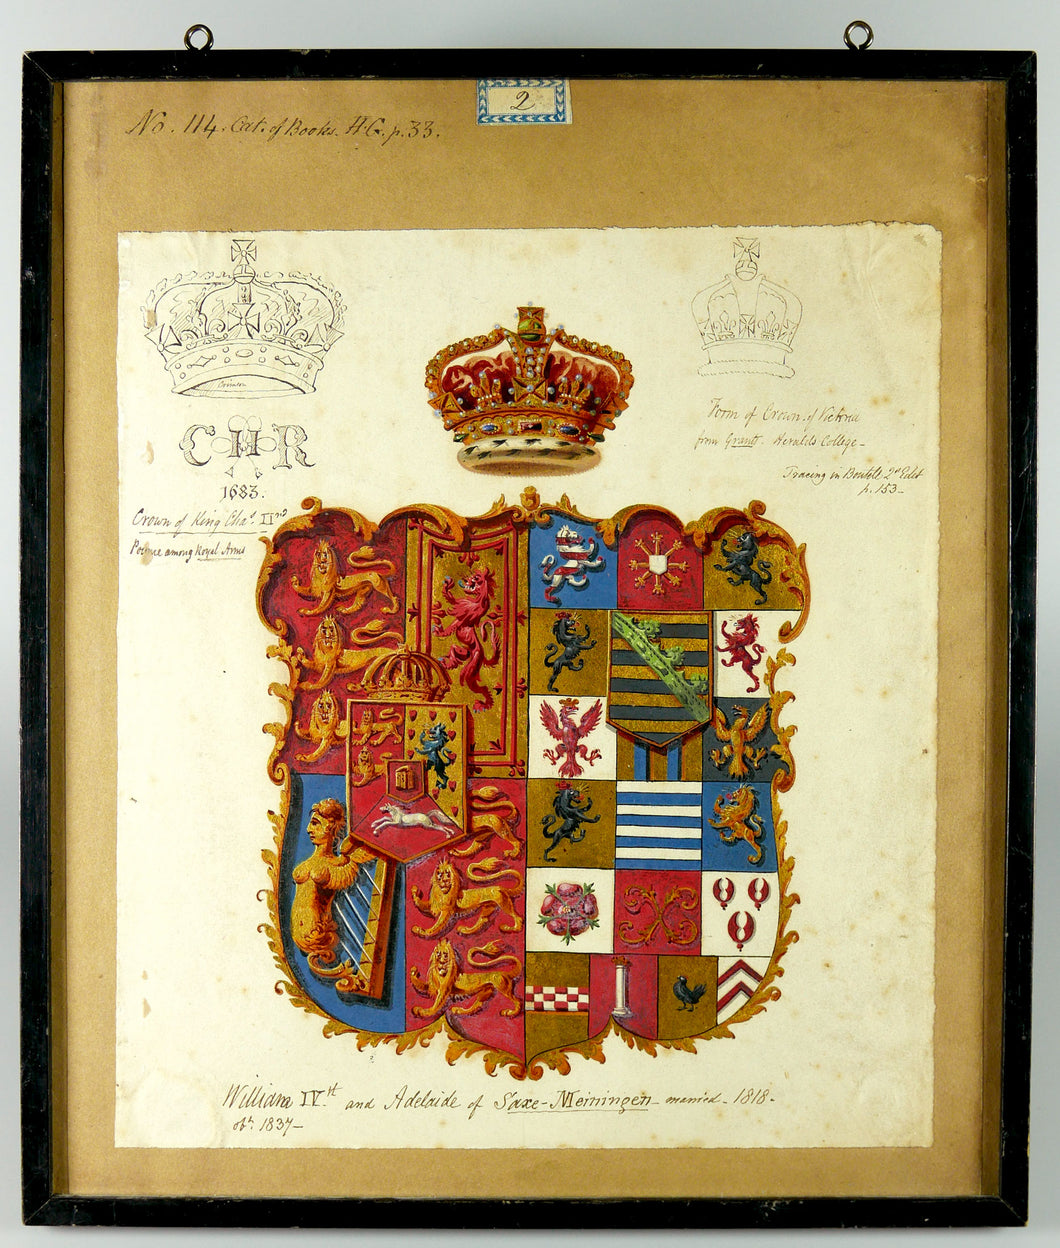 Royal Arms of King William IV and Queen Adelaide of Saxe-Menninger, Circa 1840